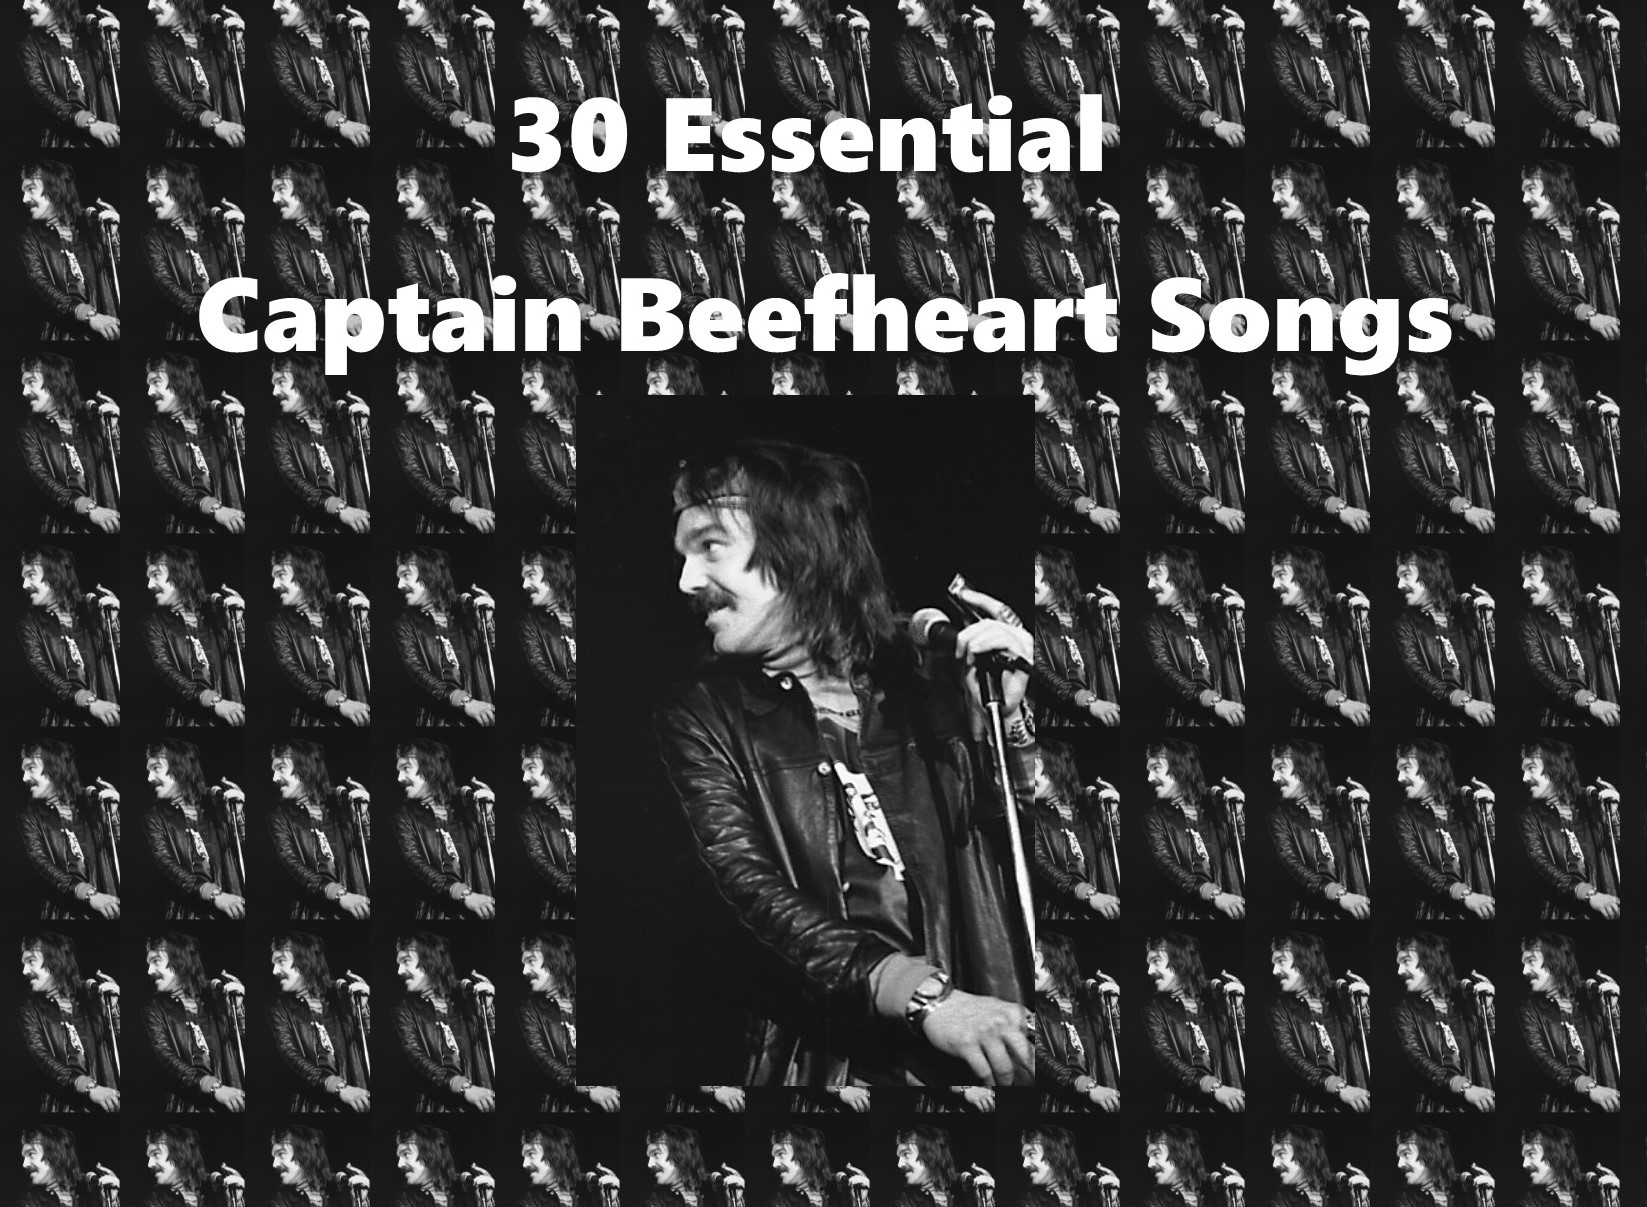 Captain Beefheart Songs